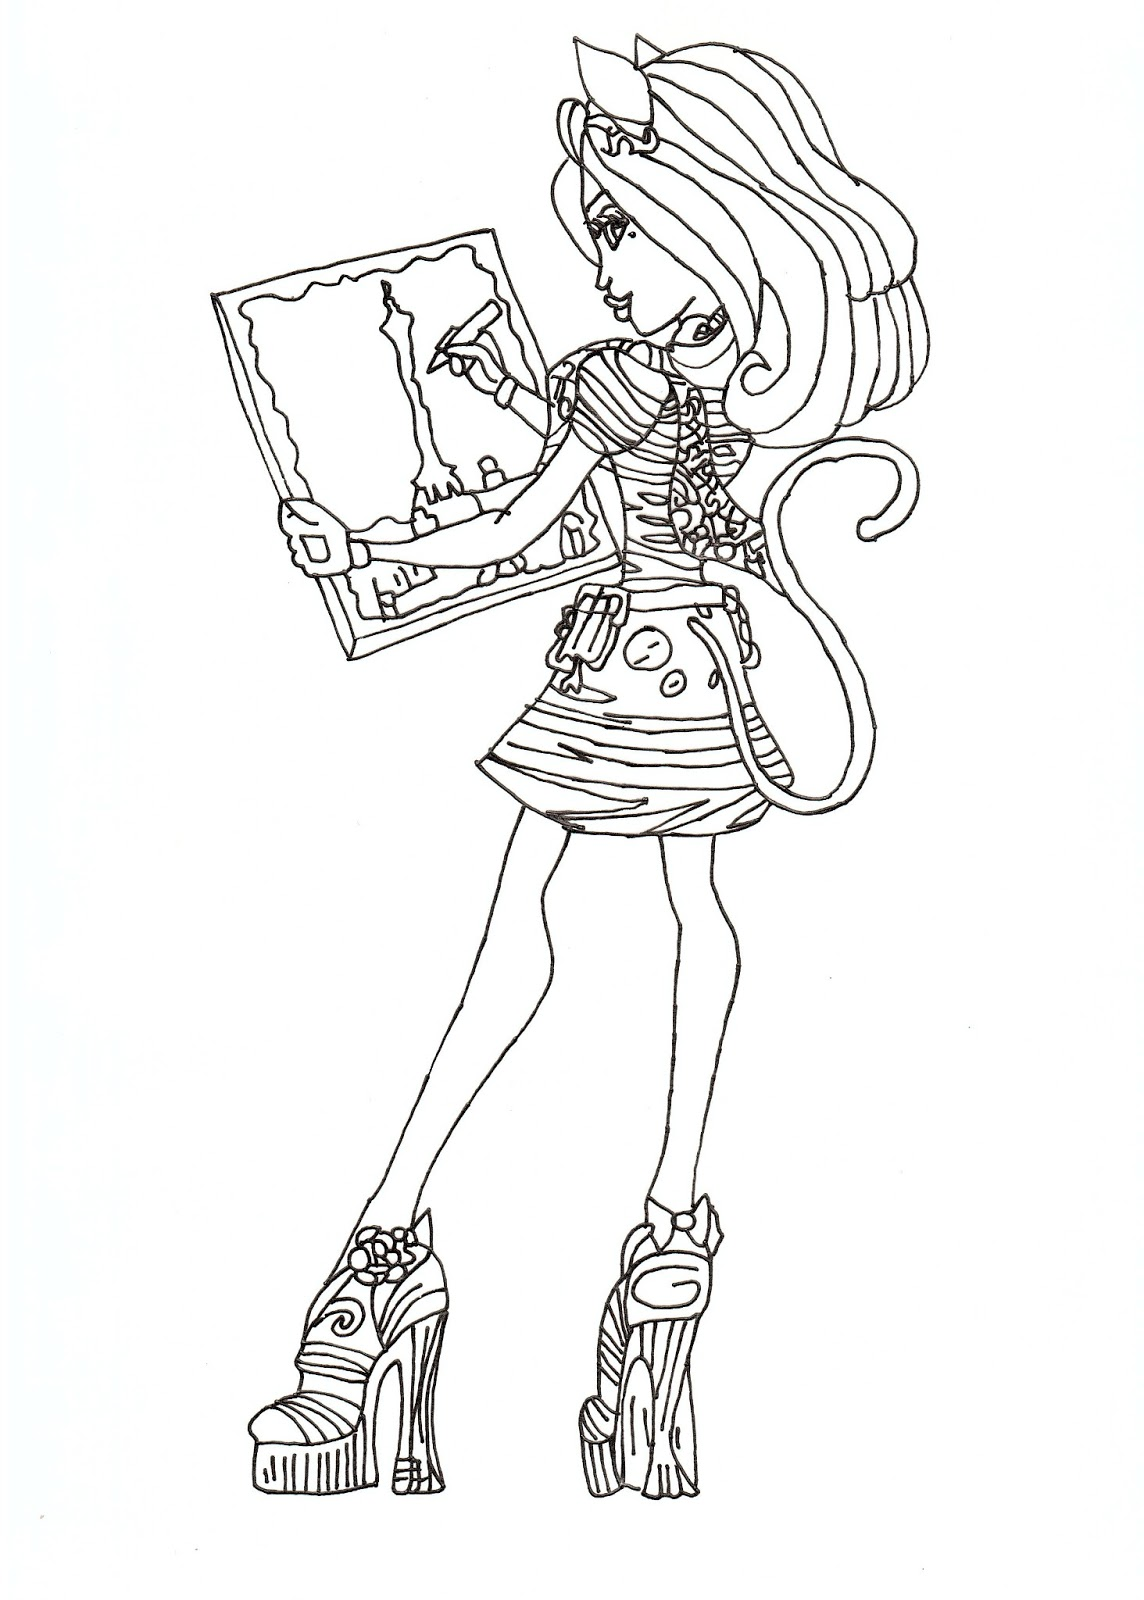 Free printable monster high coloring pages for kids Coloring book images